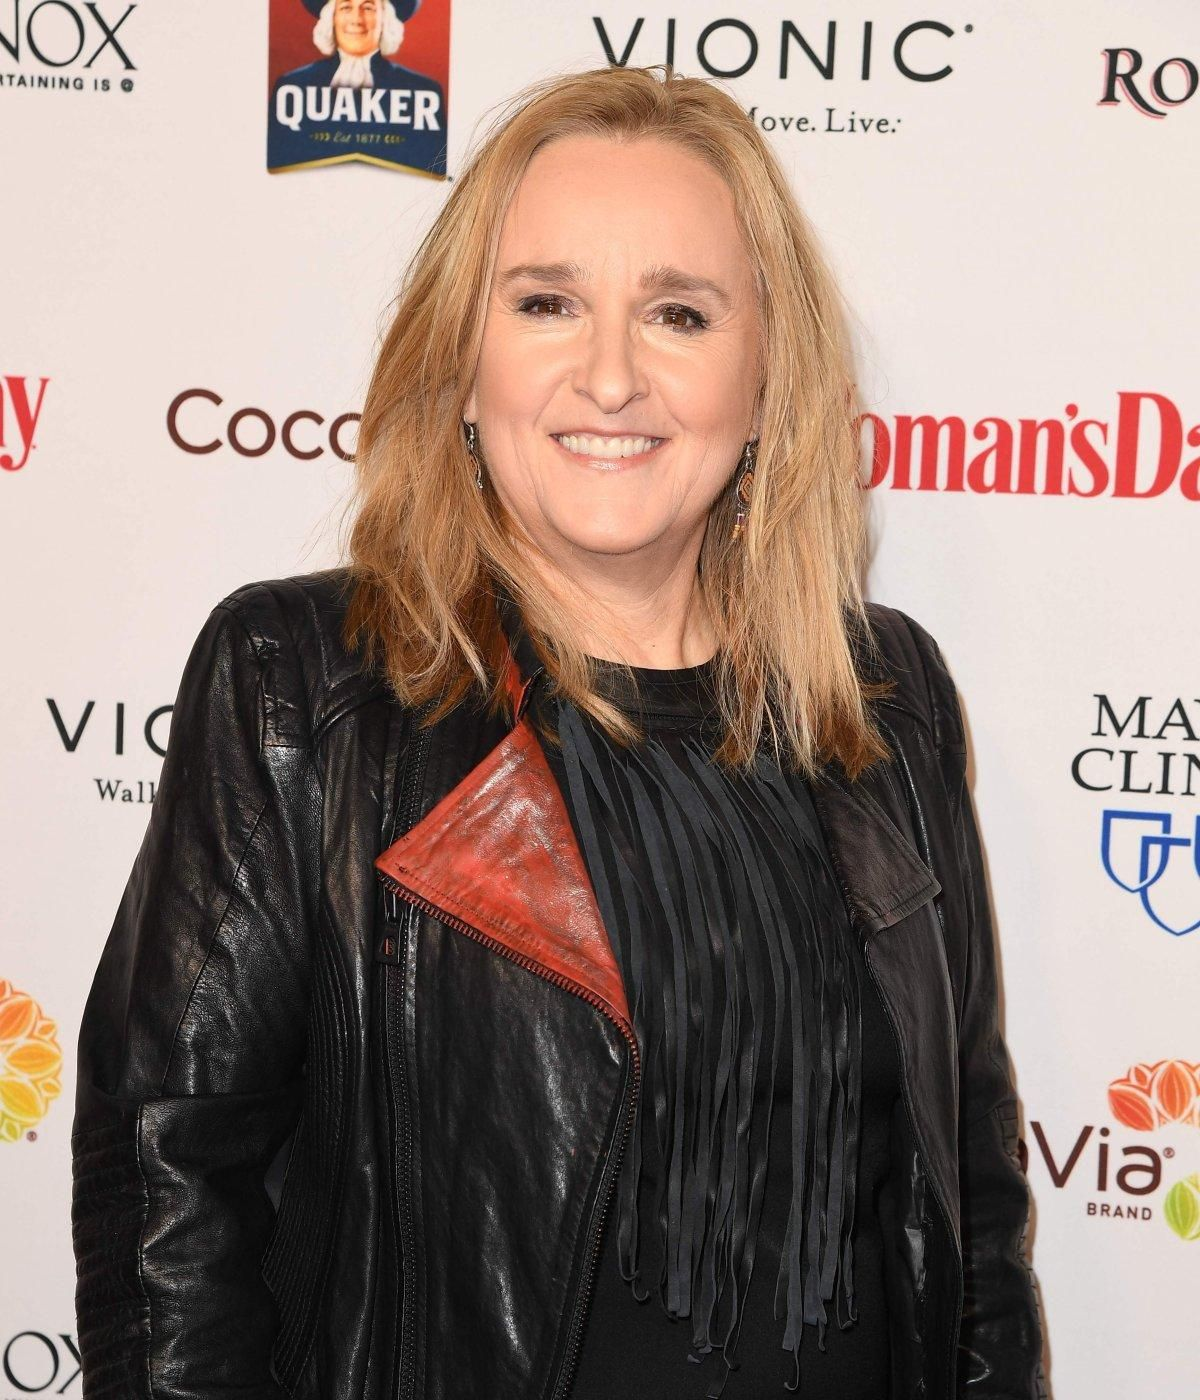 Feb. 9, 2017 - NYDailyNews.com - Melissa Etheridge: Donald Trump is a bigger threat to LGBTQ rights than Mike Pence